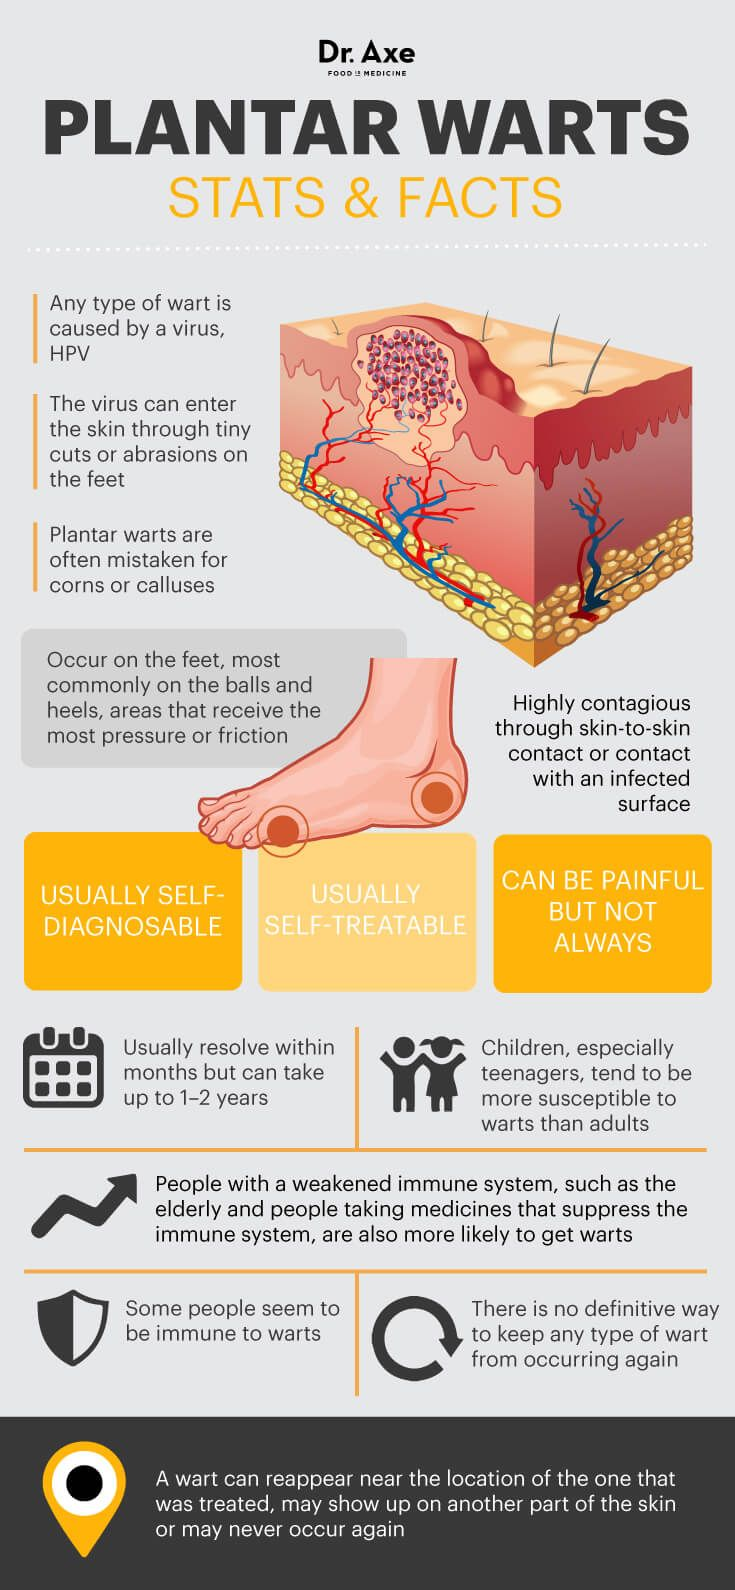 how to get rid of plantar wart on foot fast